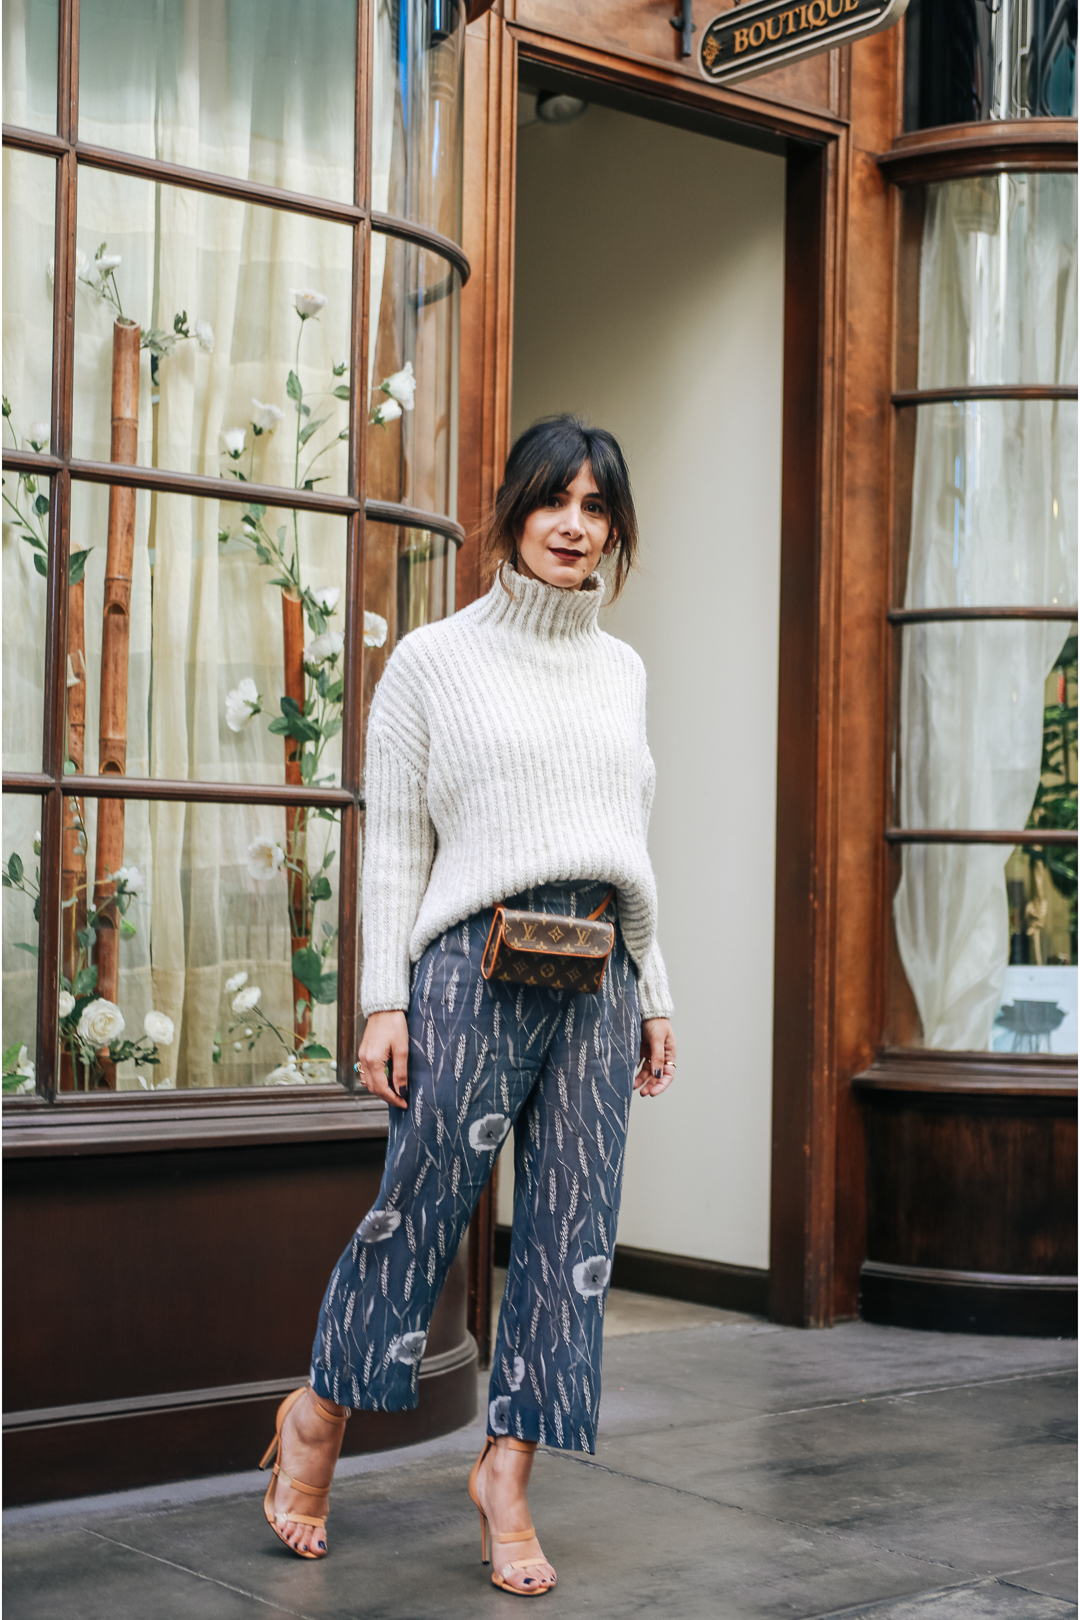 how to style palazzo crop pants outfit ideas